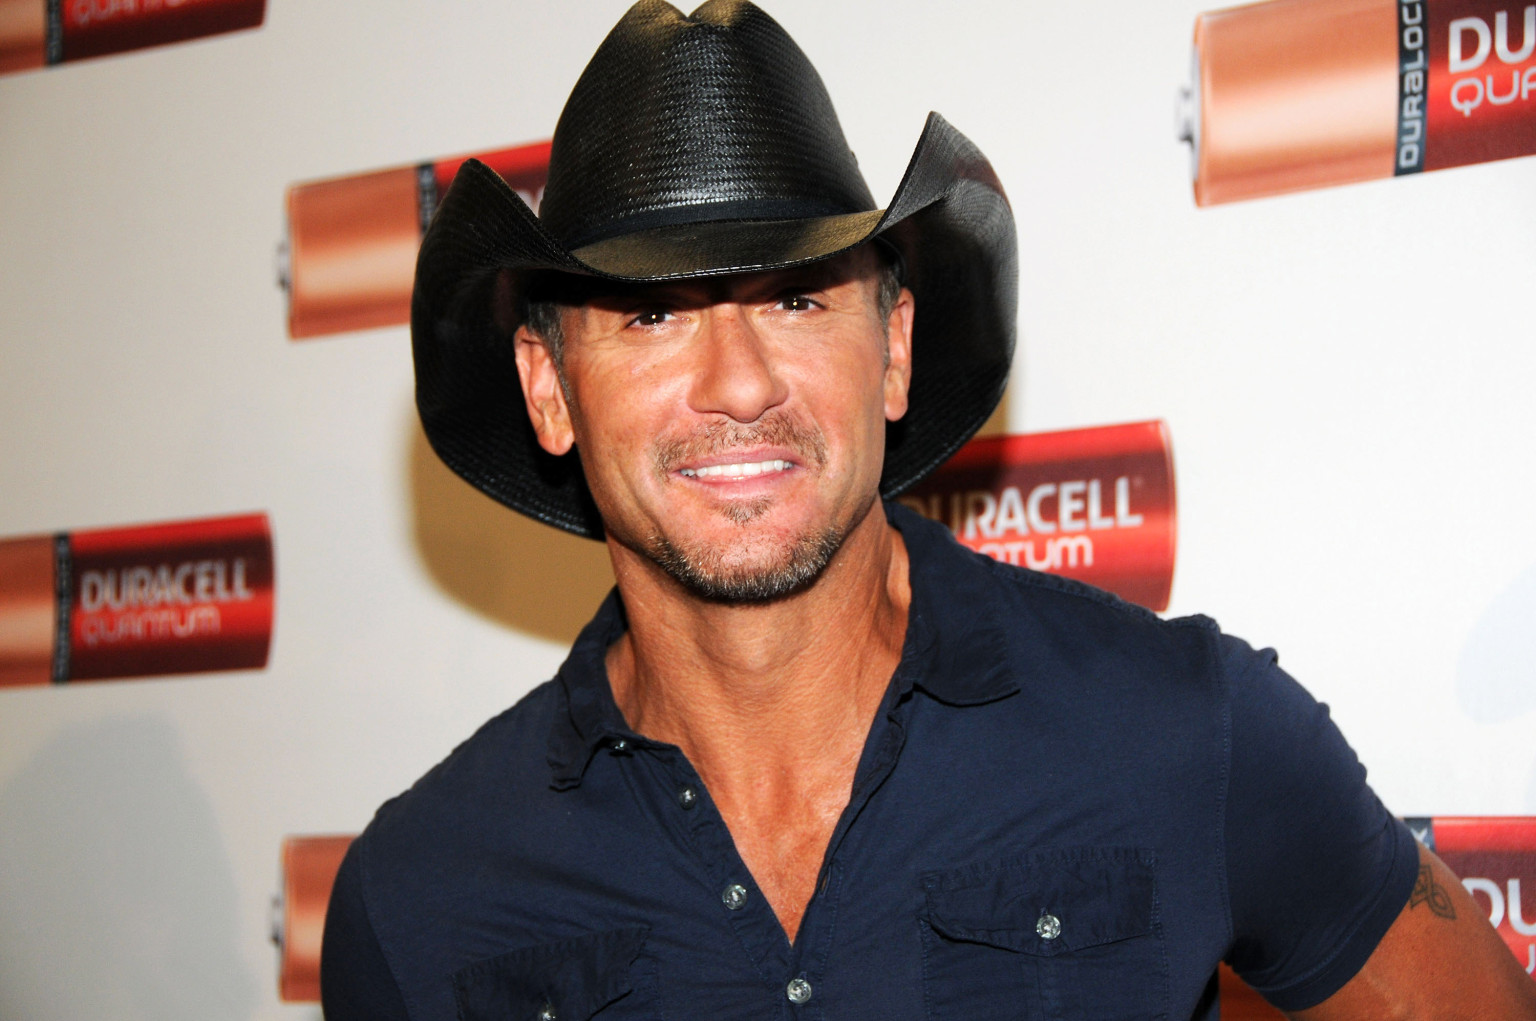 tim mcgraw instagram